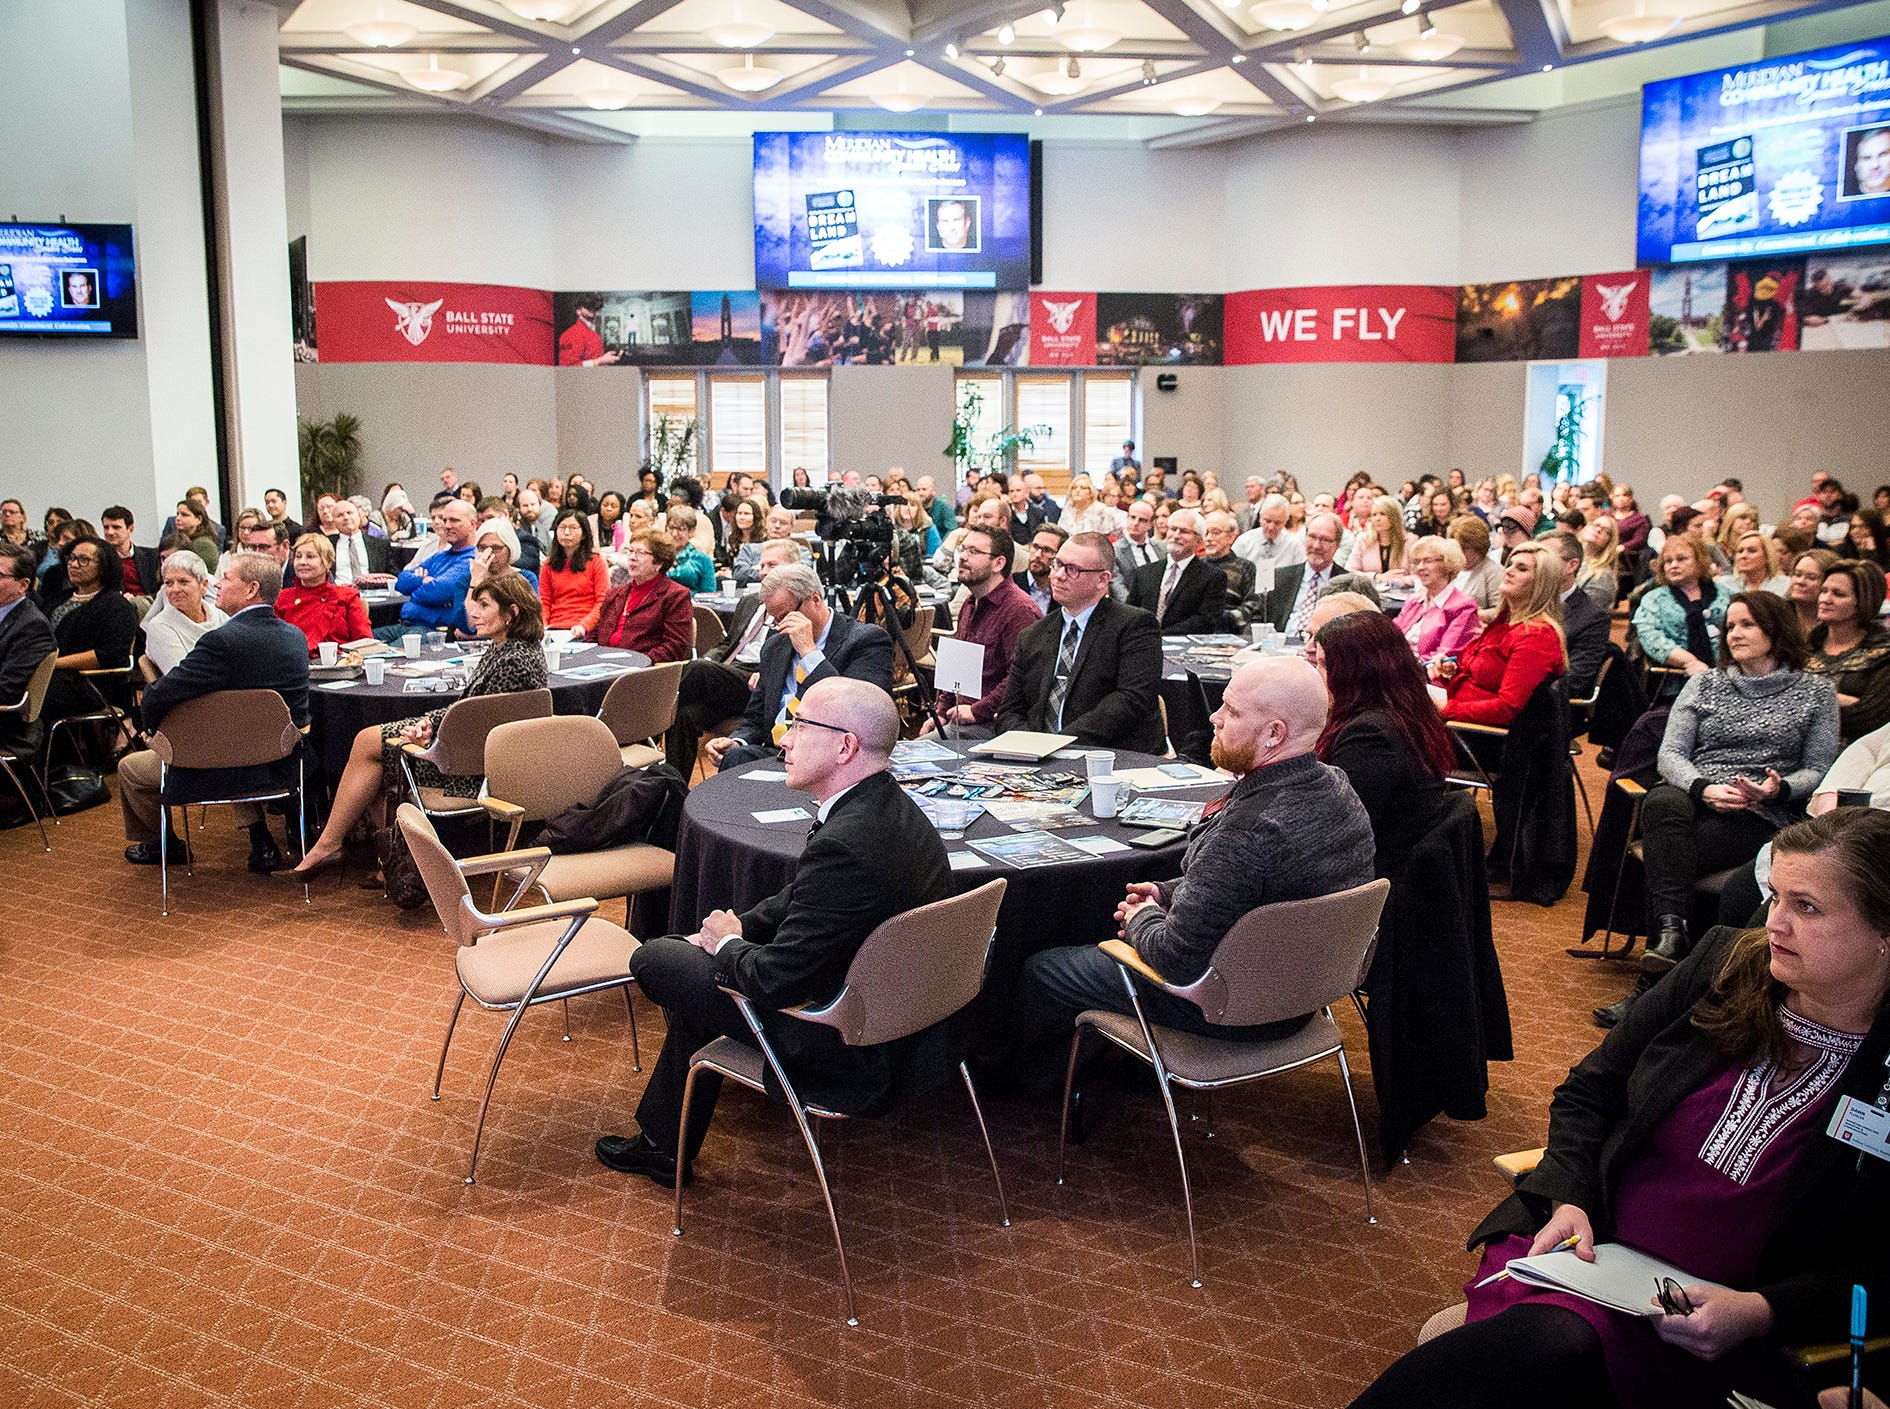 Hundreds attended the Meridian Community Health Speaker Series panel discussion on the opiate crisis which included author Sam Quinones and perspectives from local community leaders at the Ball State Alumni Center Thursday, Nov. 29, 2018.